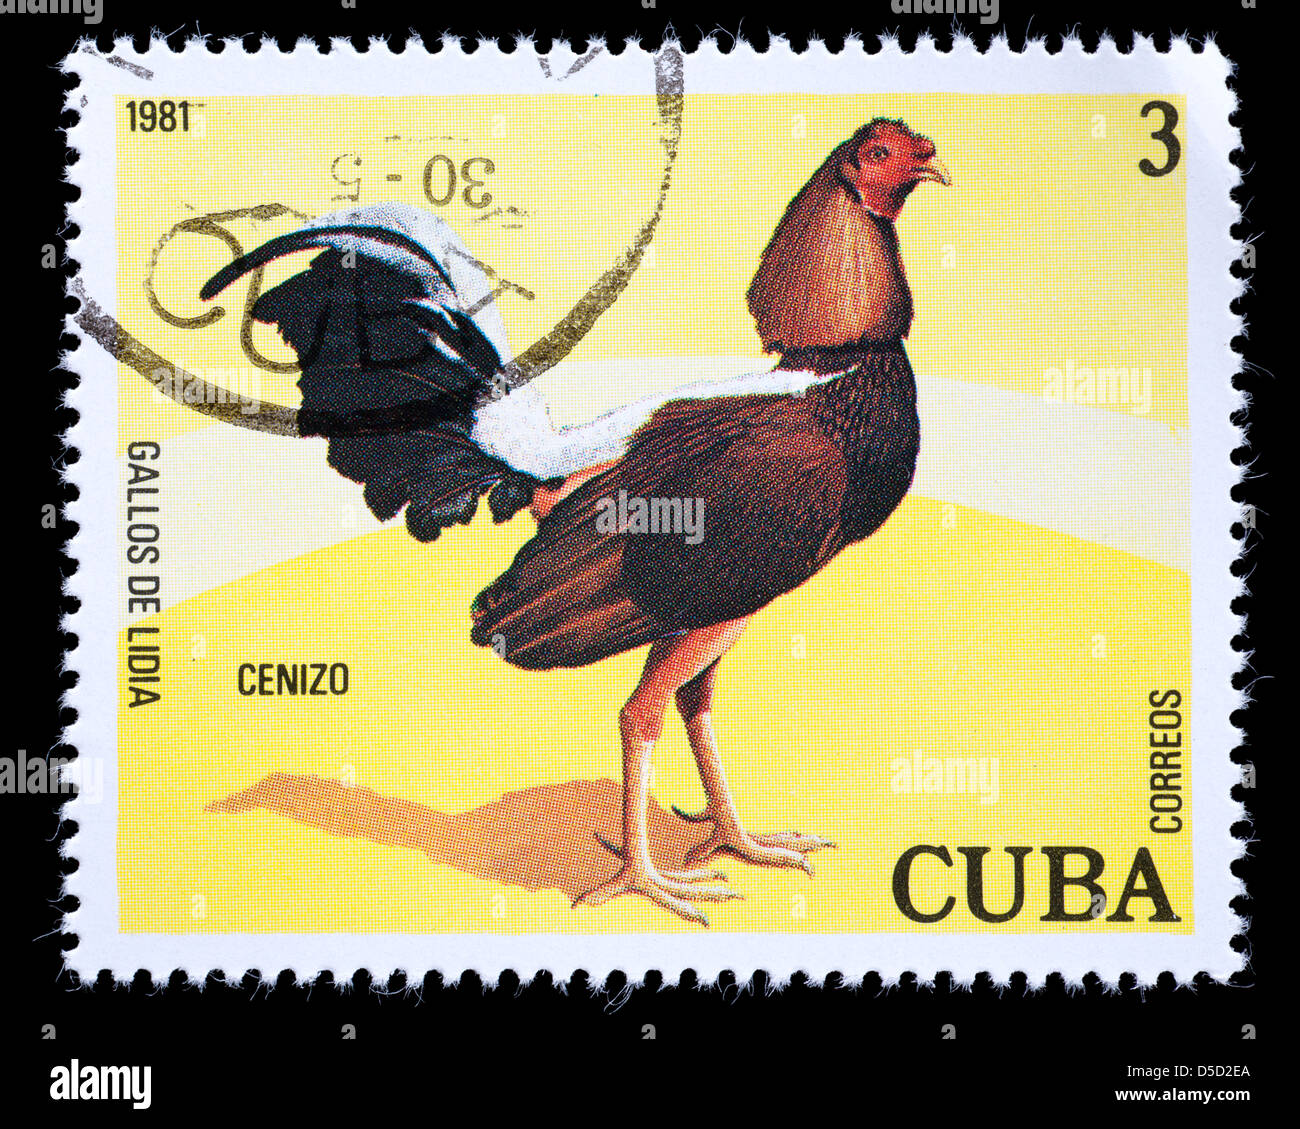 Postage Stamp From Cuba Depicting A Rooster